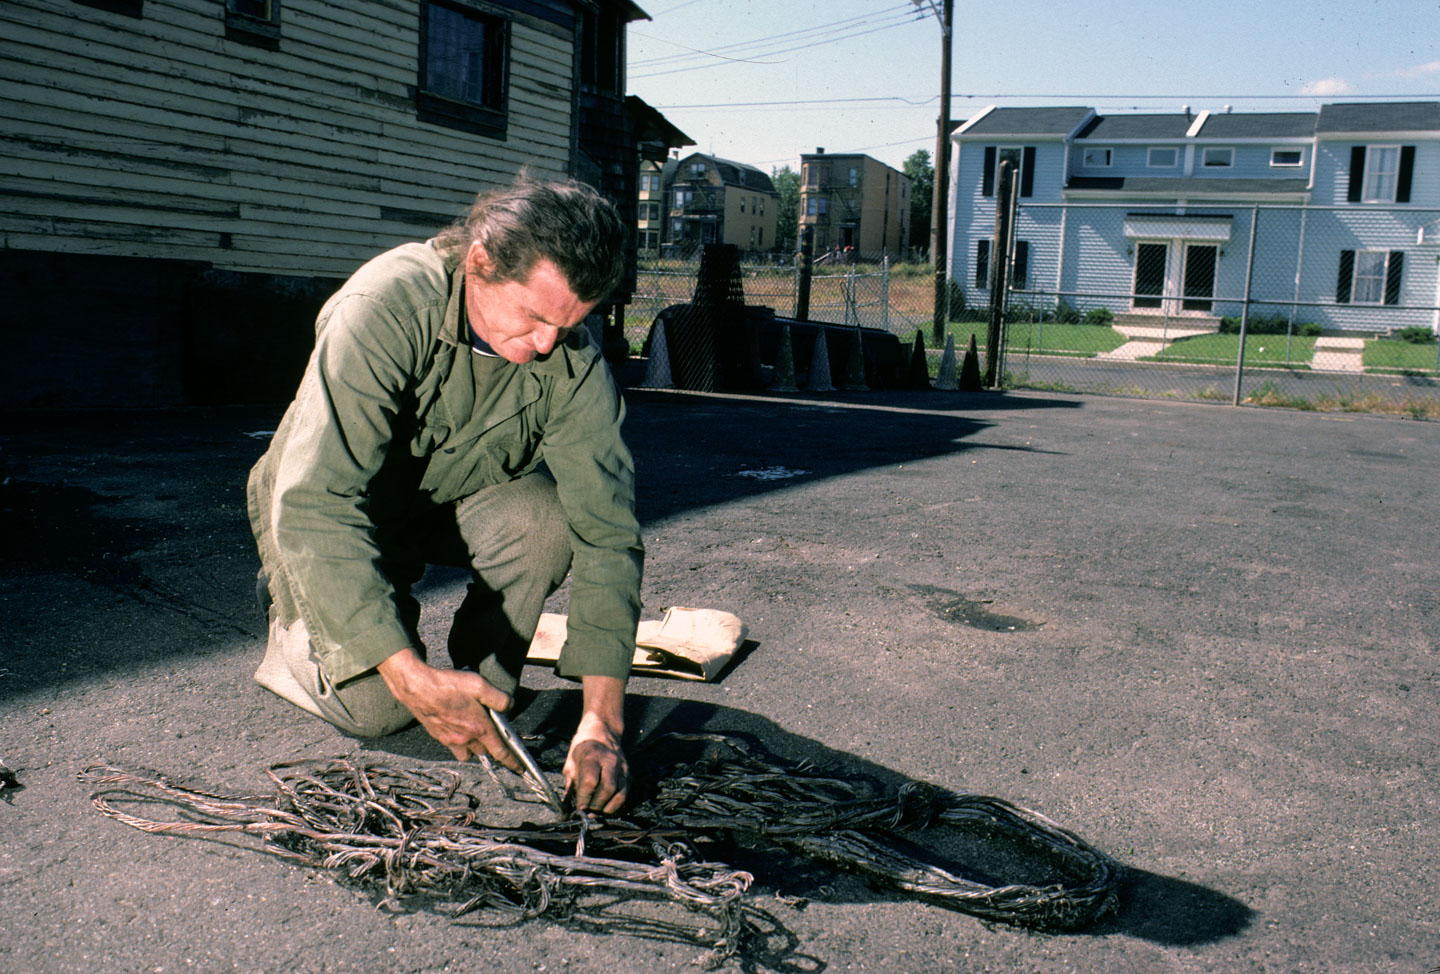 14-Kea Tawana separating copper from brass in peeled cables to sell to a junk dealer, Orange at 14th, Newark, 1987_